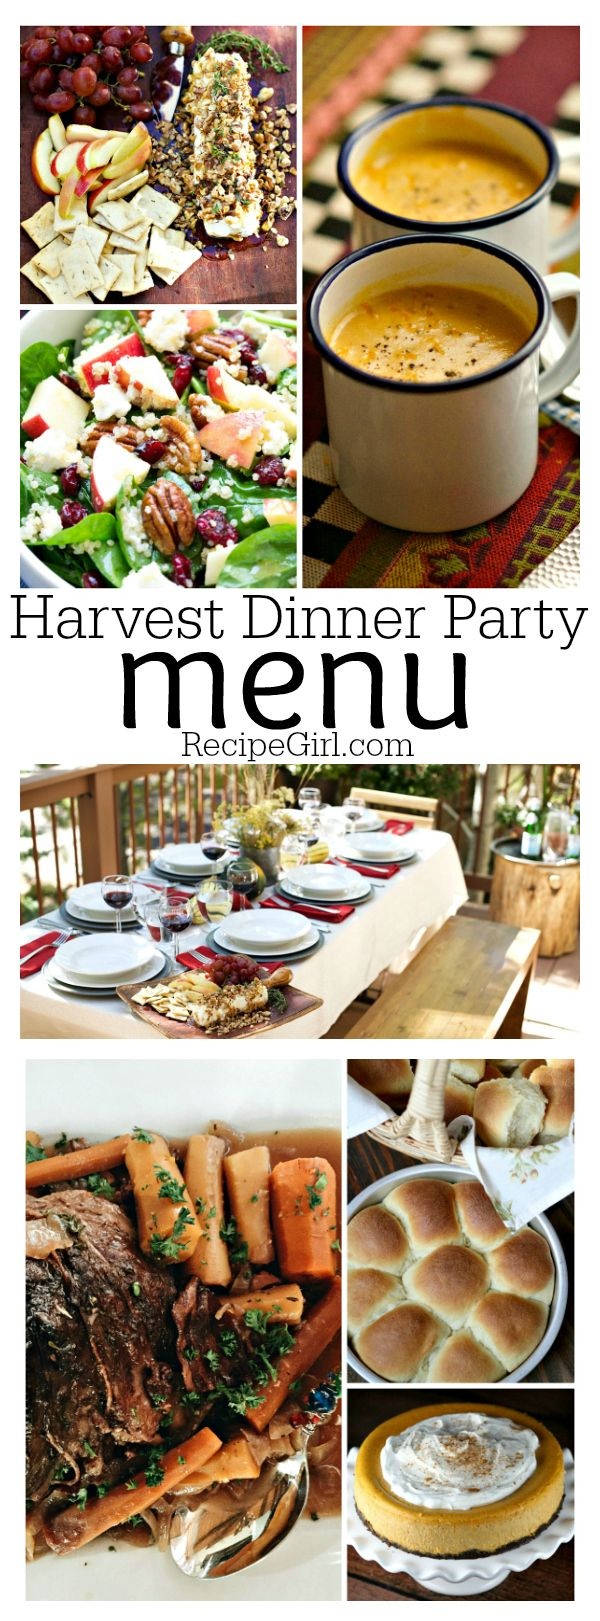 25 best ideas about fall dinner parties on pinterest outdoor fall parties dinner parties and. Black Bedroom Furniture Sets. Home Design Ideas